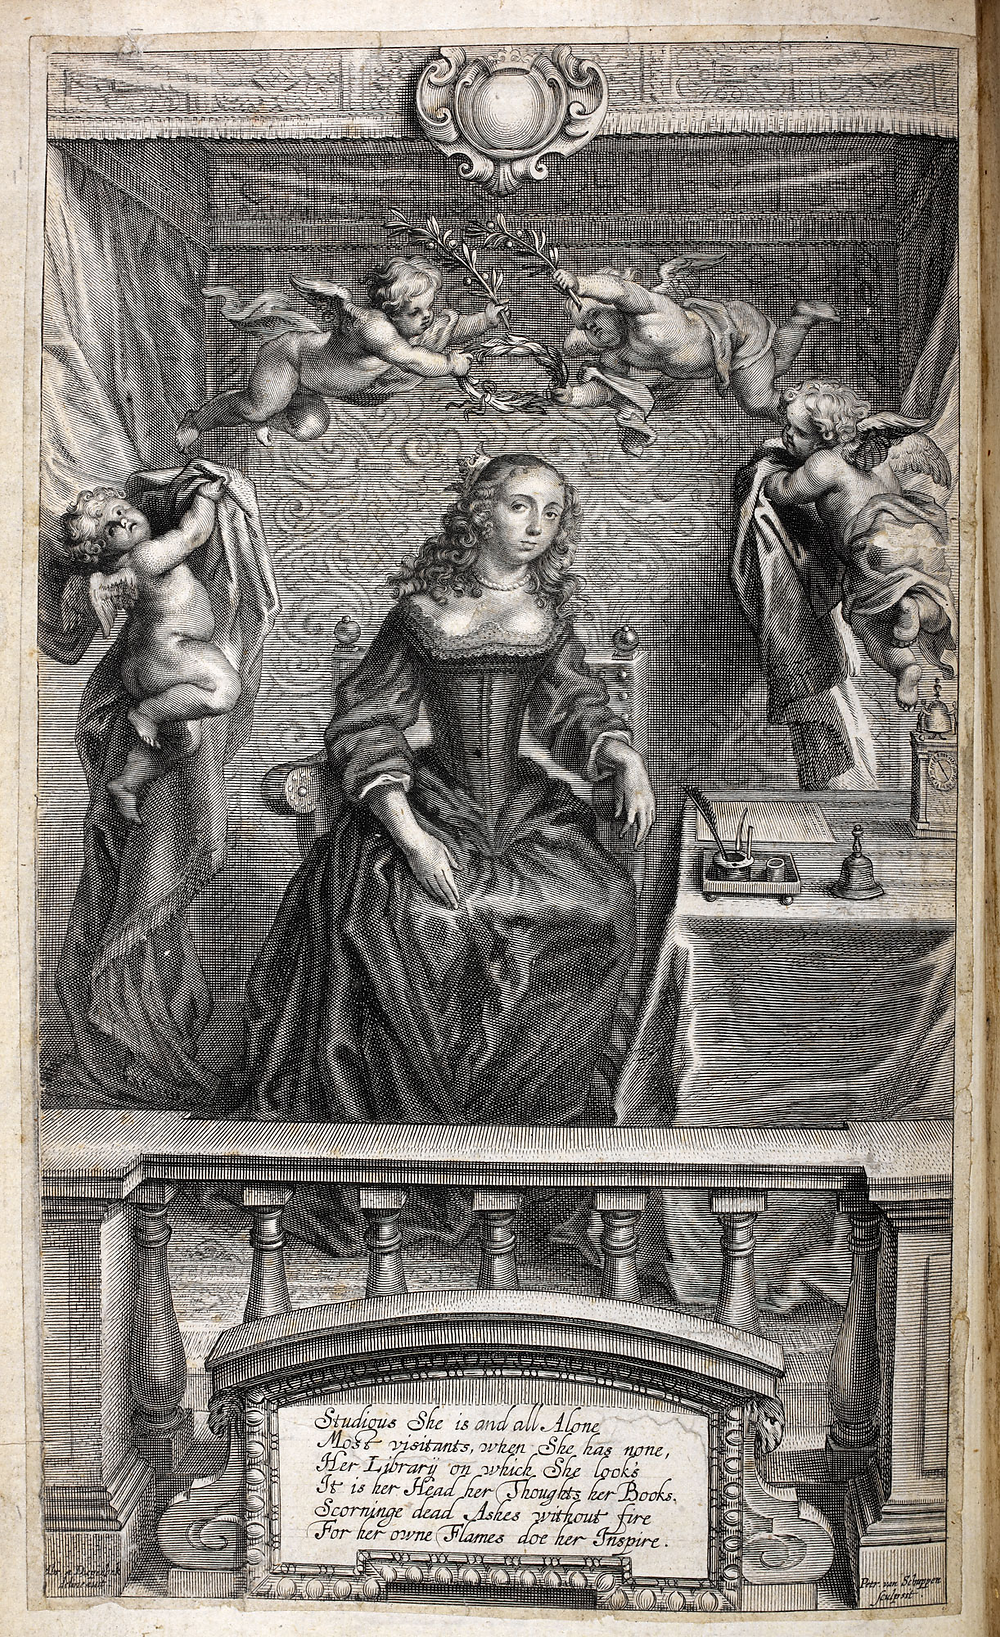 Nature's Pictures frontispiece (1656) – Cavendish with husband and step-children. Held in the British Library.